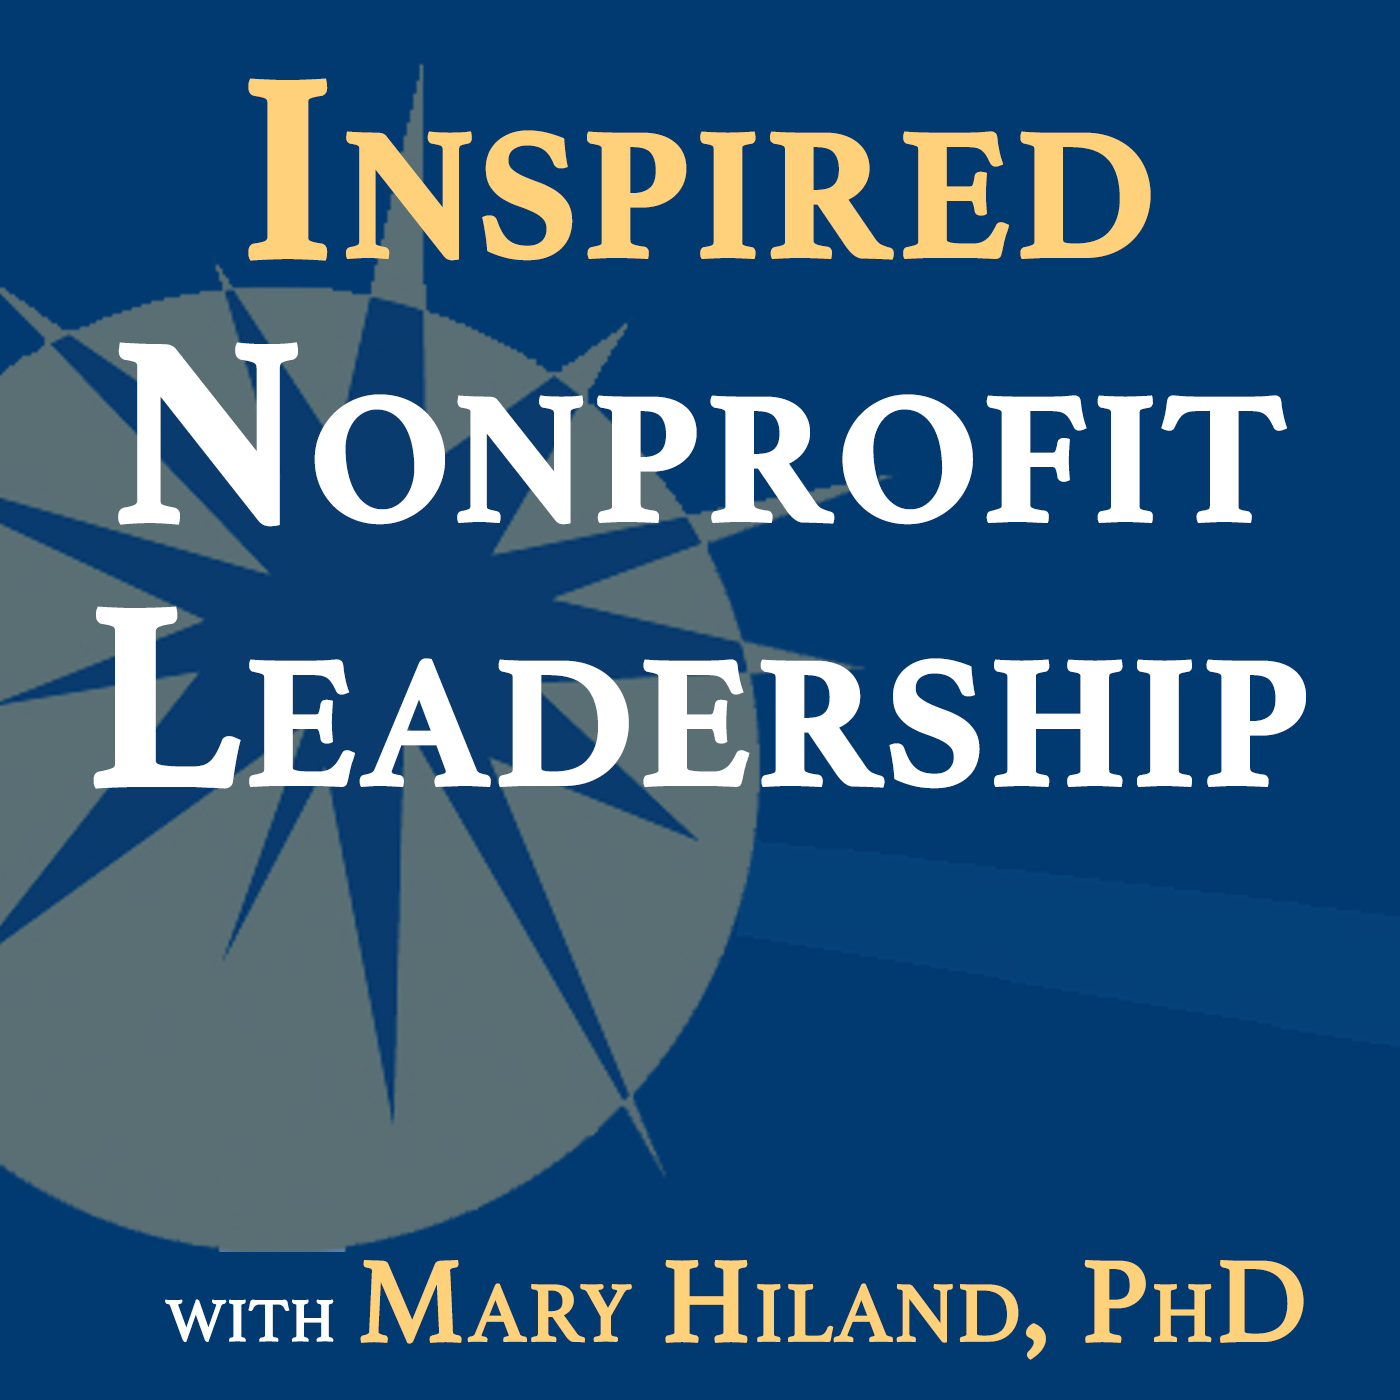 Inspired Nonprofit Leadership